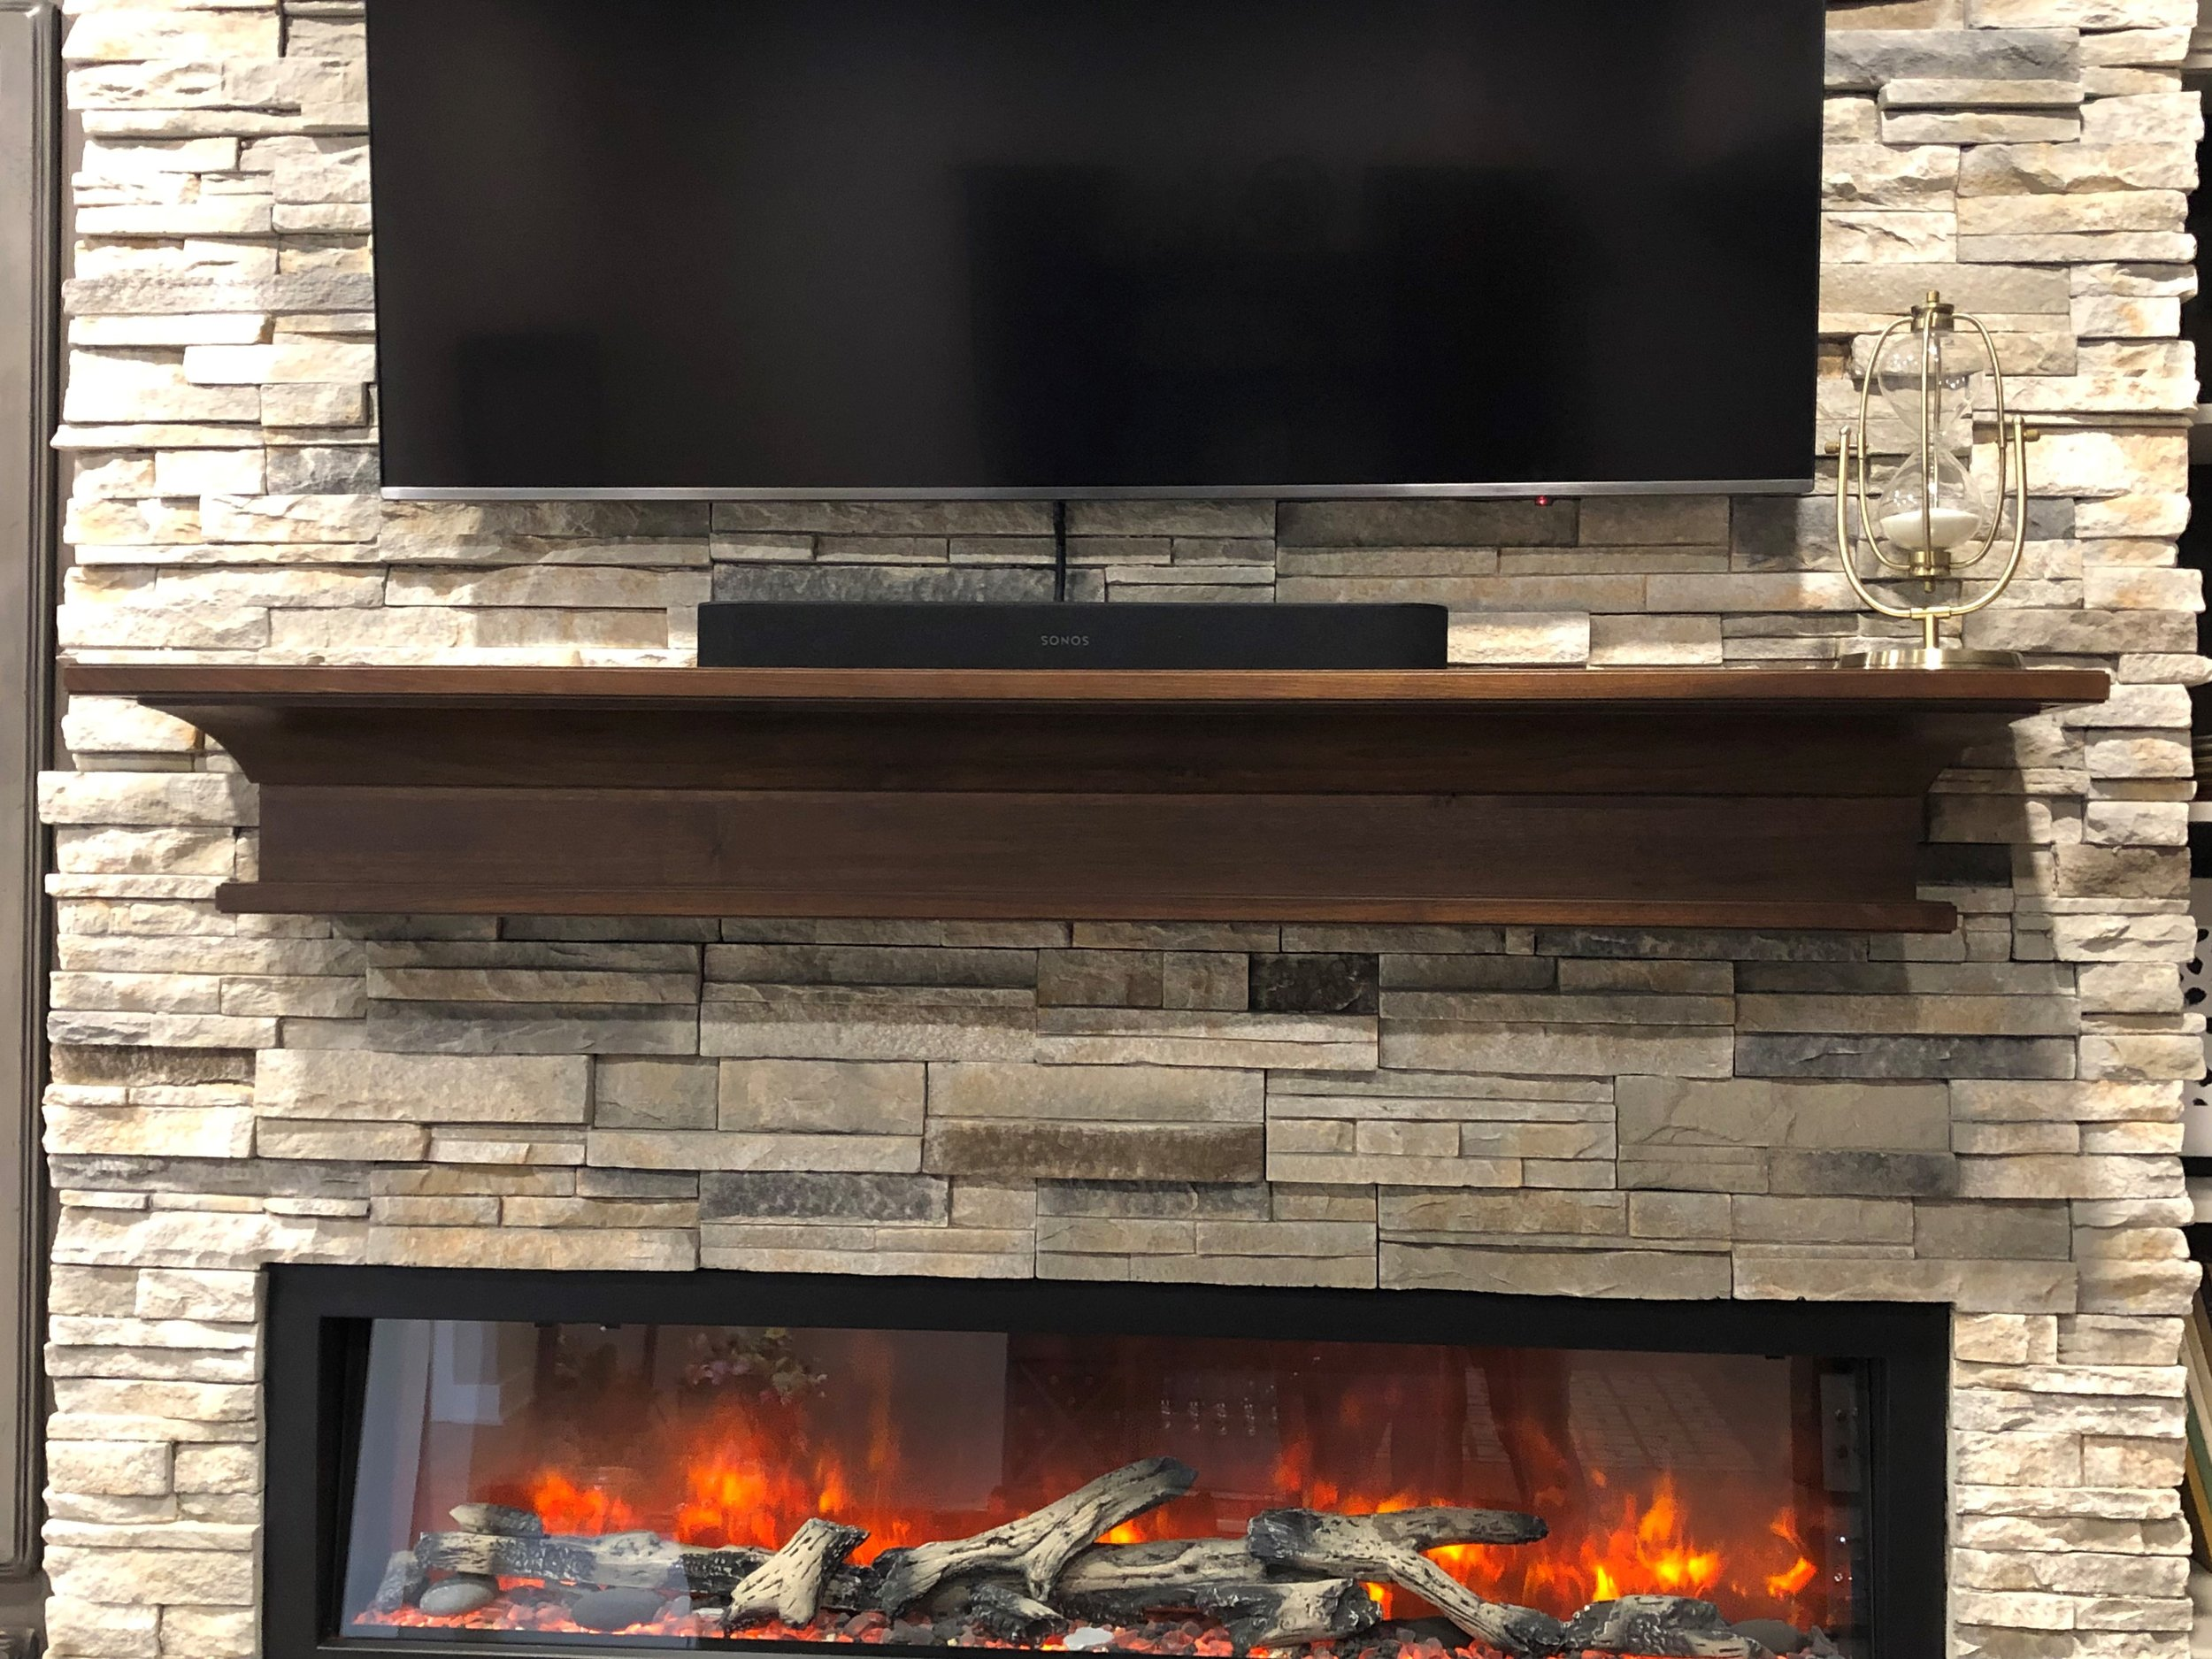 Mantel - StarMark Cabinetry - Walnut finished with Rye stain